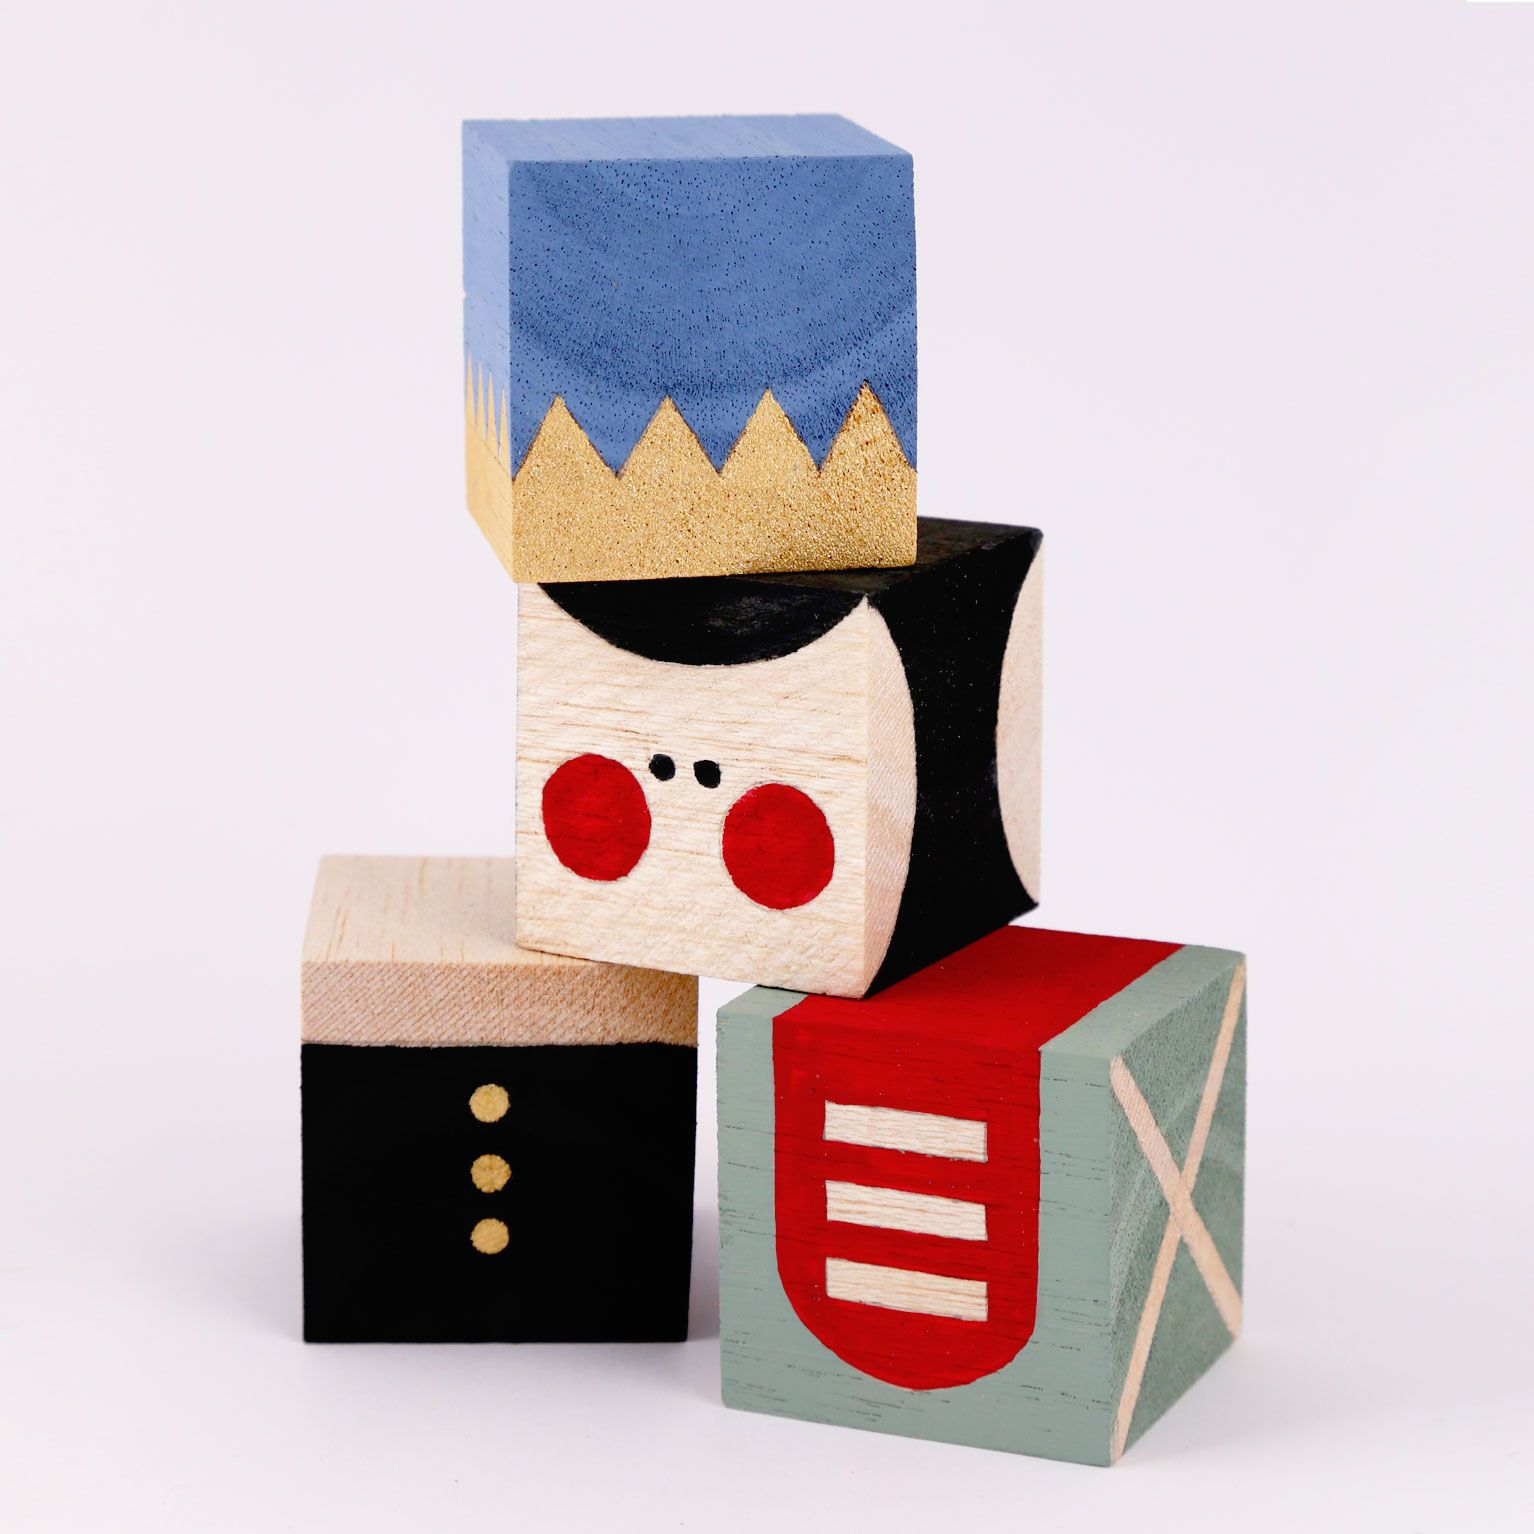 Stacking blocks are such an easy and accessible toy for parents to